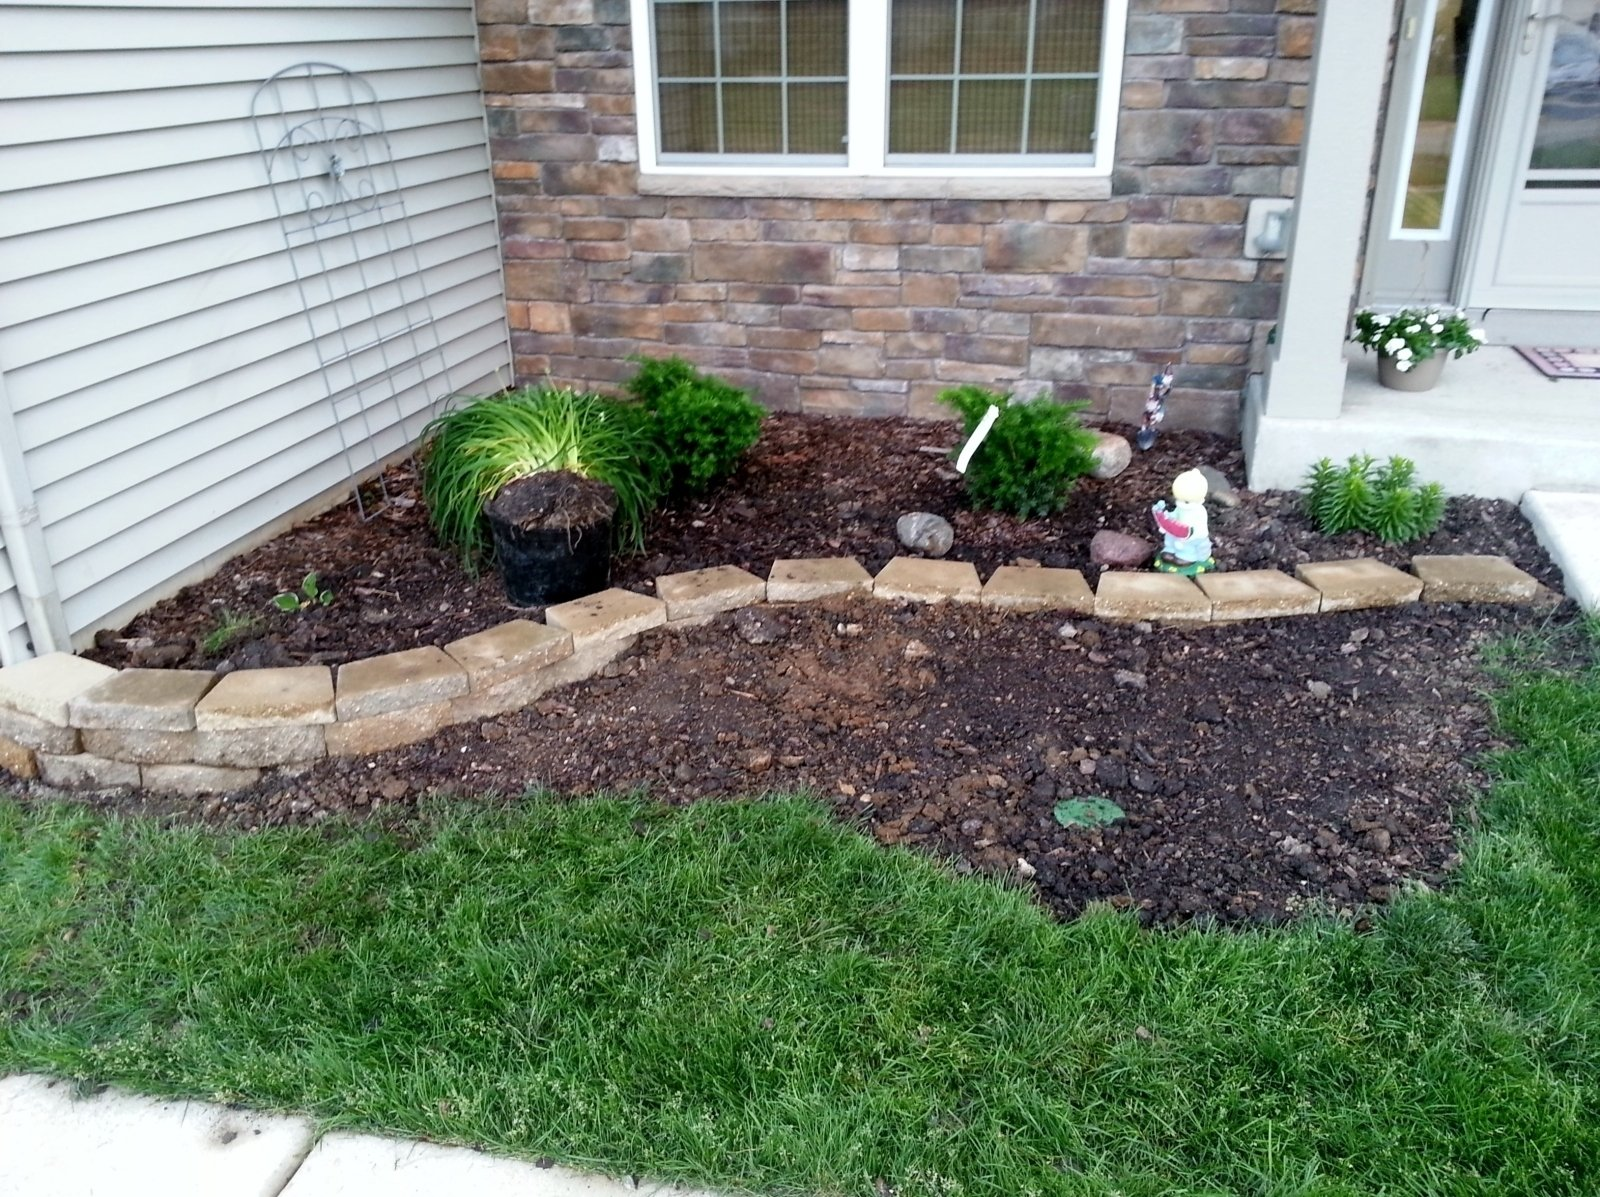 10 Trendy Simple Front Yard Landscaping Ideas simple front yard landscaping ideas townhouse good within for small 2020